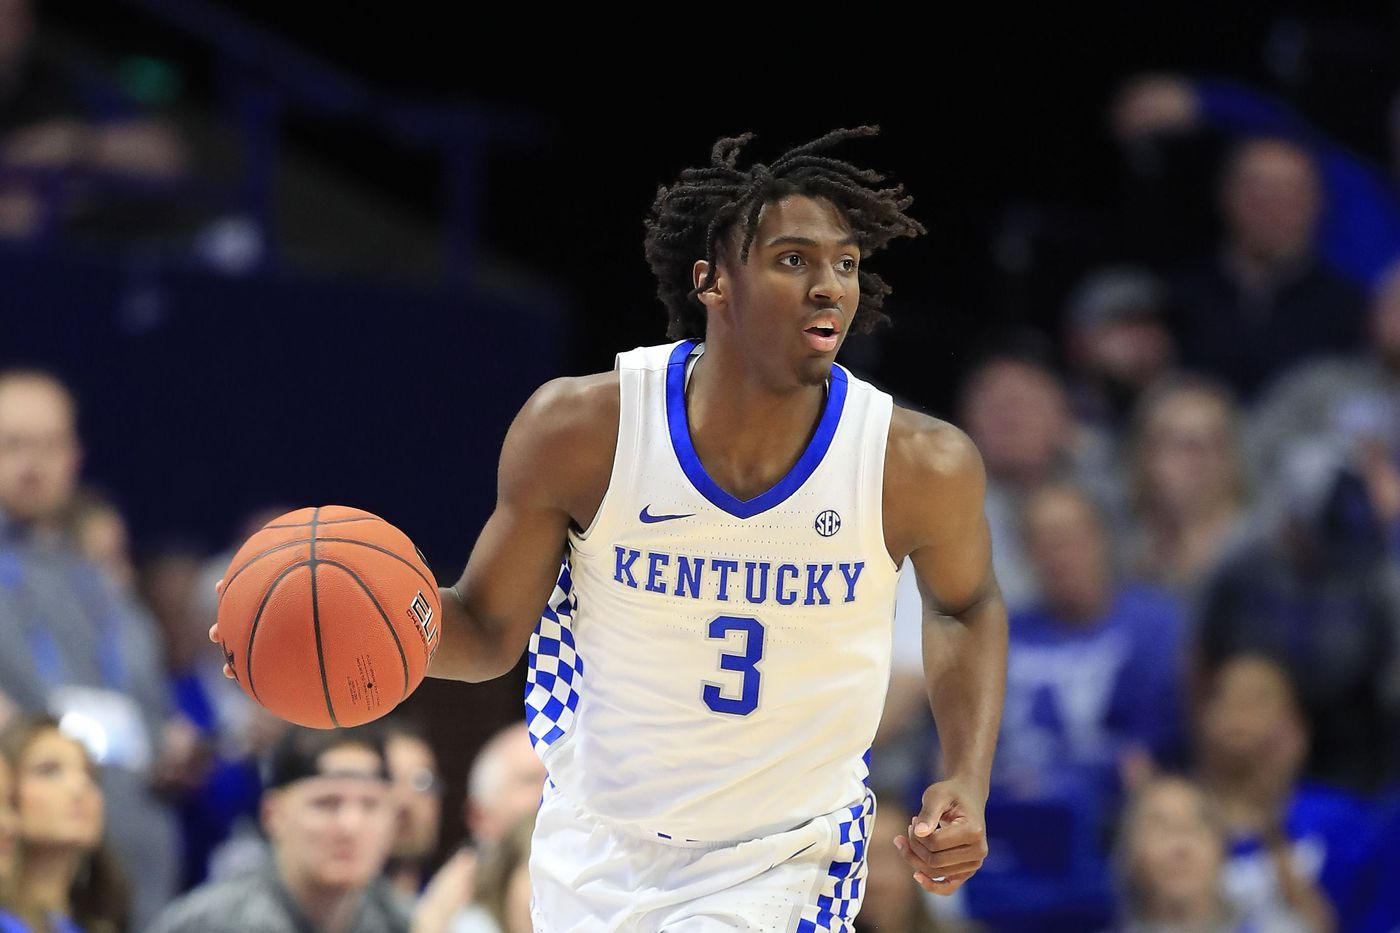 Sixers Select Tyrese Maxey With 21st Overall Pick In 2020 Nba Draft Liberty Ballers